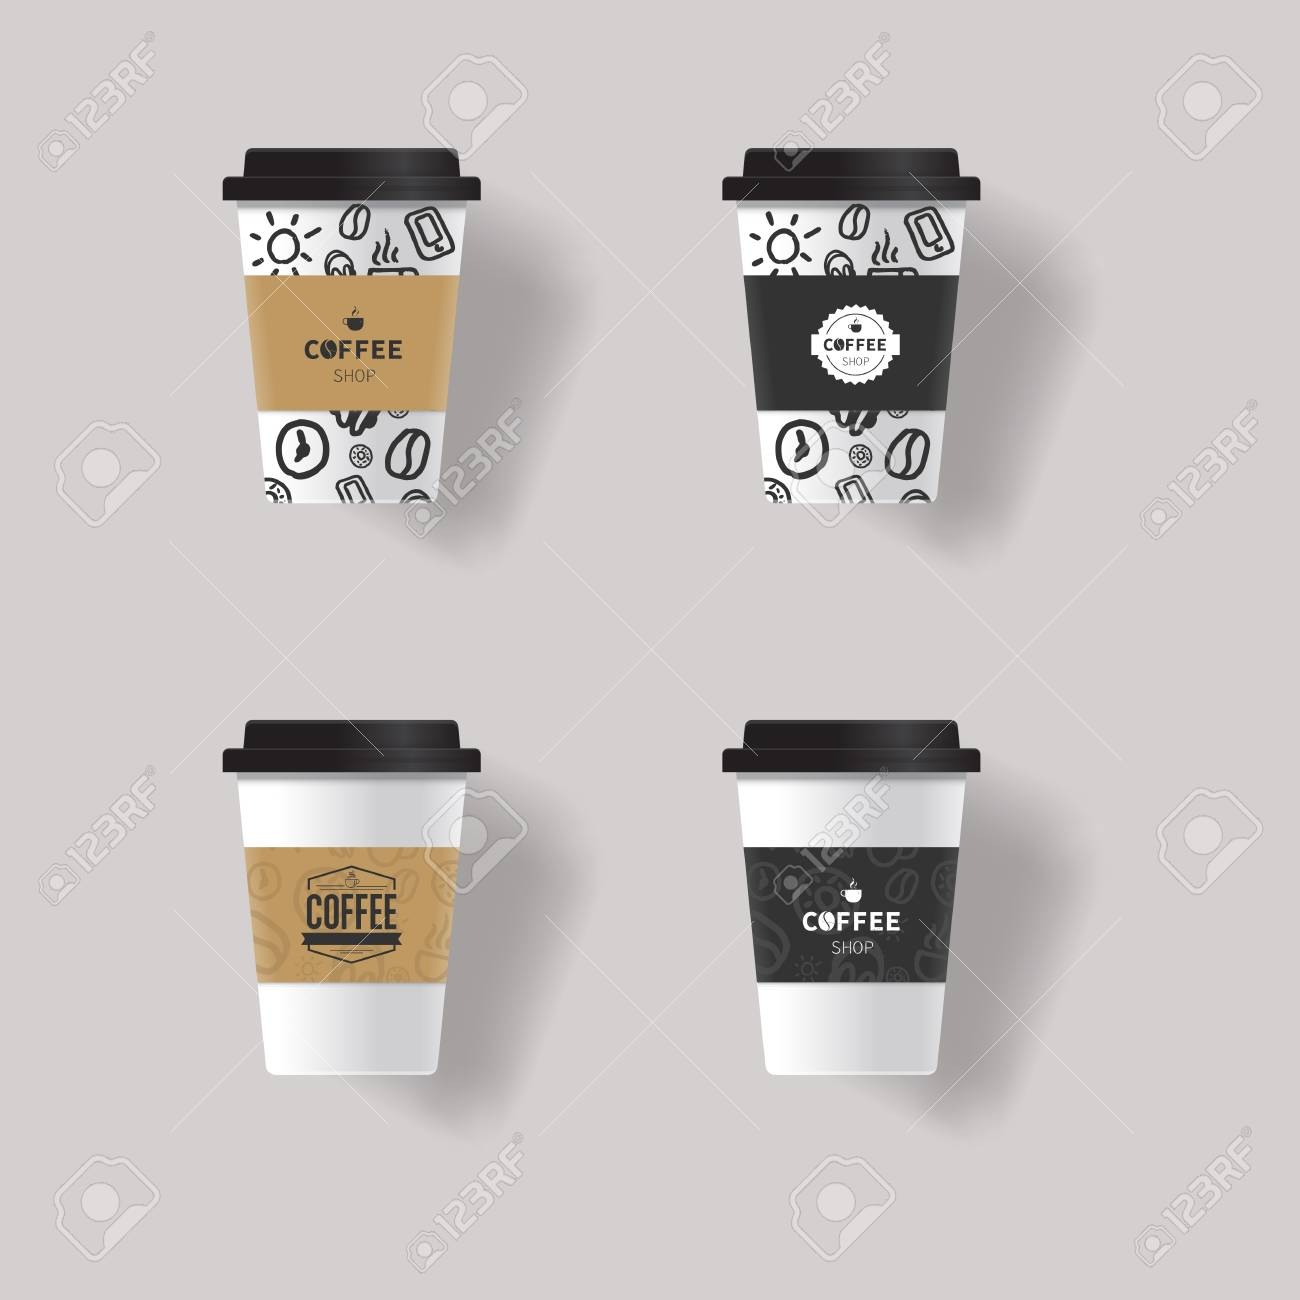 Coffee Cup Design Template Mock Up With Patterns Texture Background Stock Vector